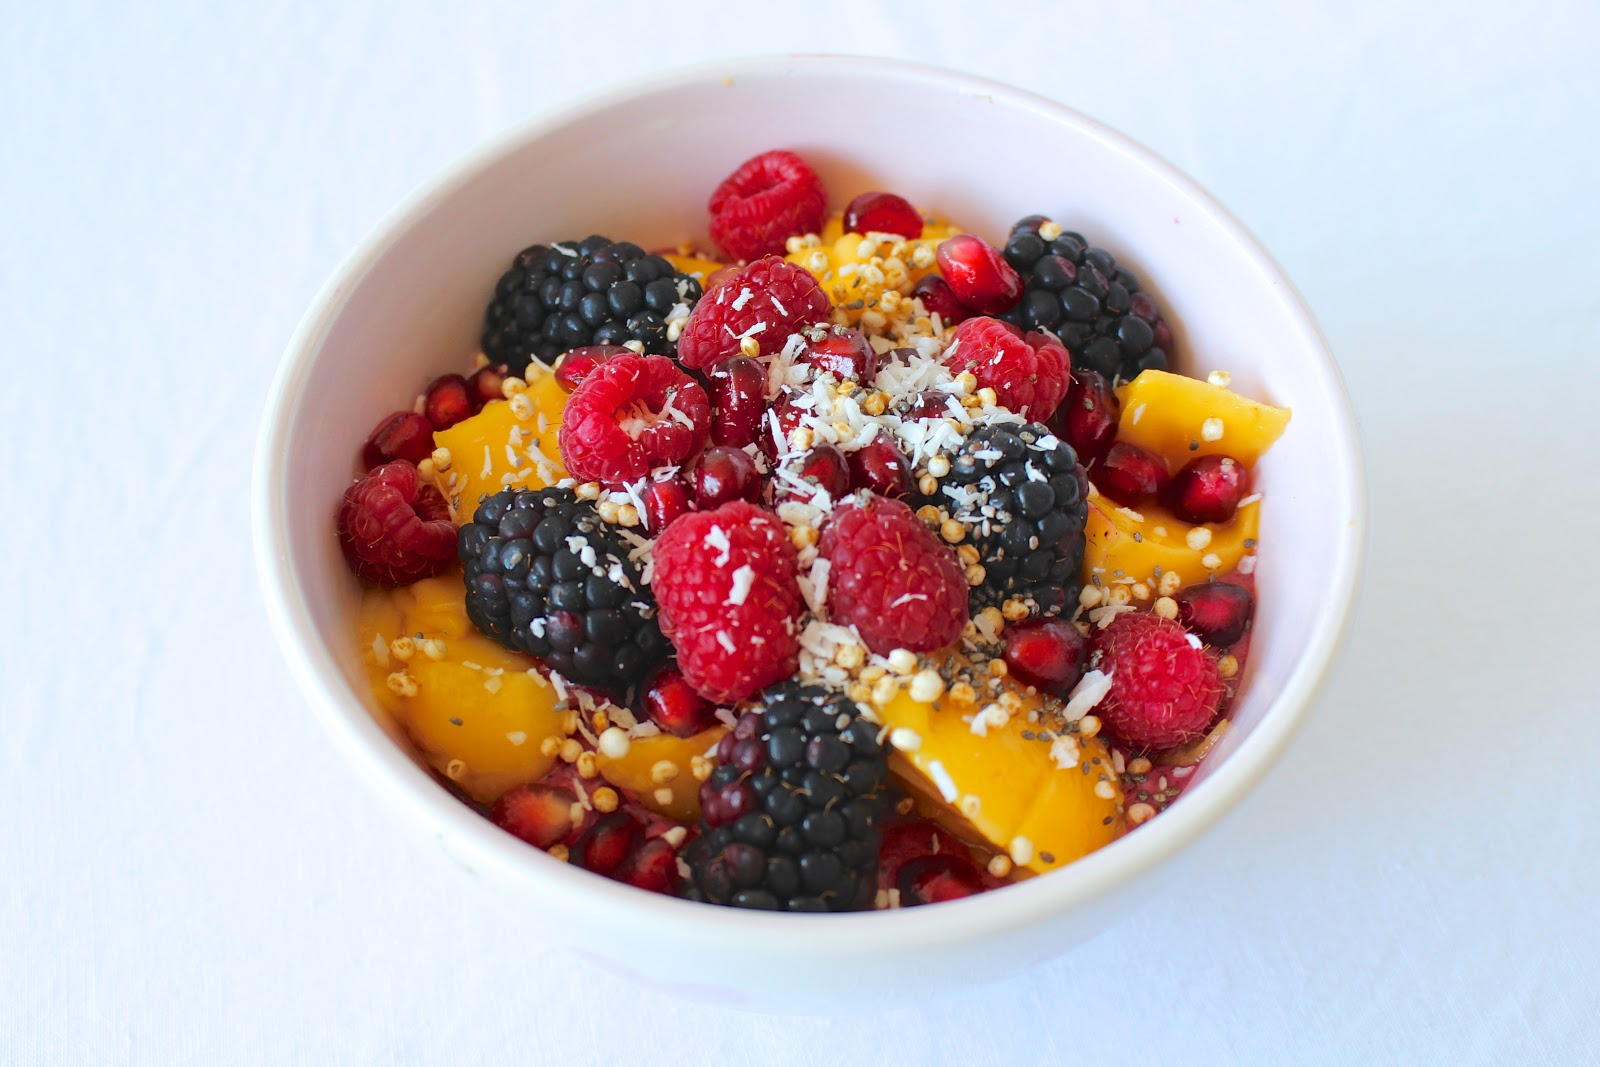 Açaí bowl recipe